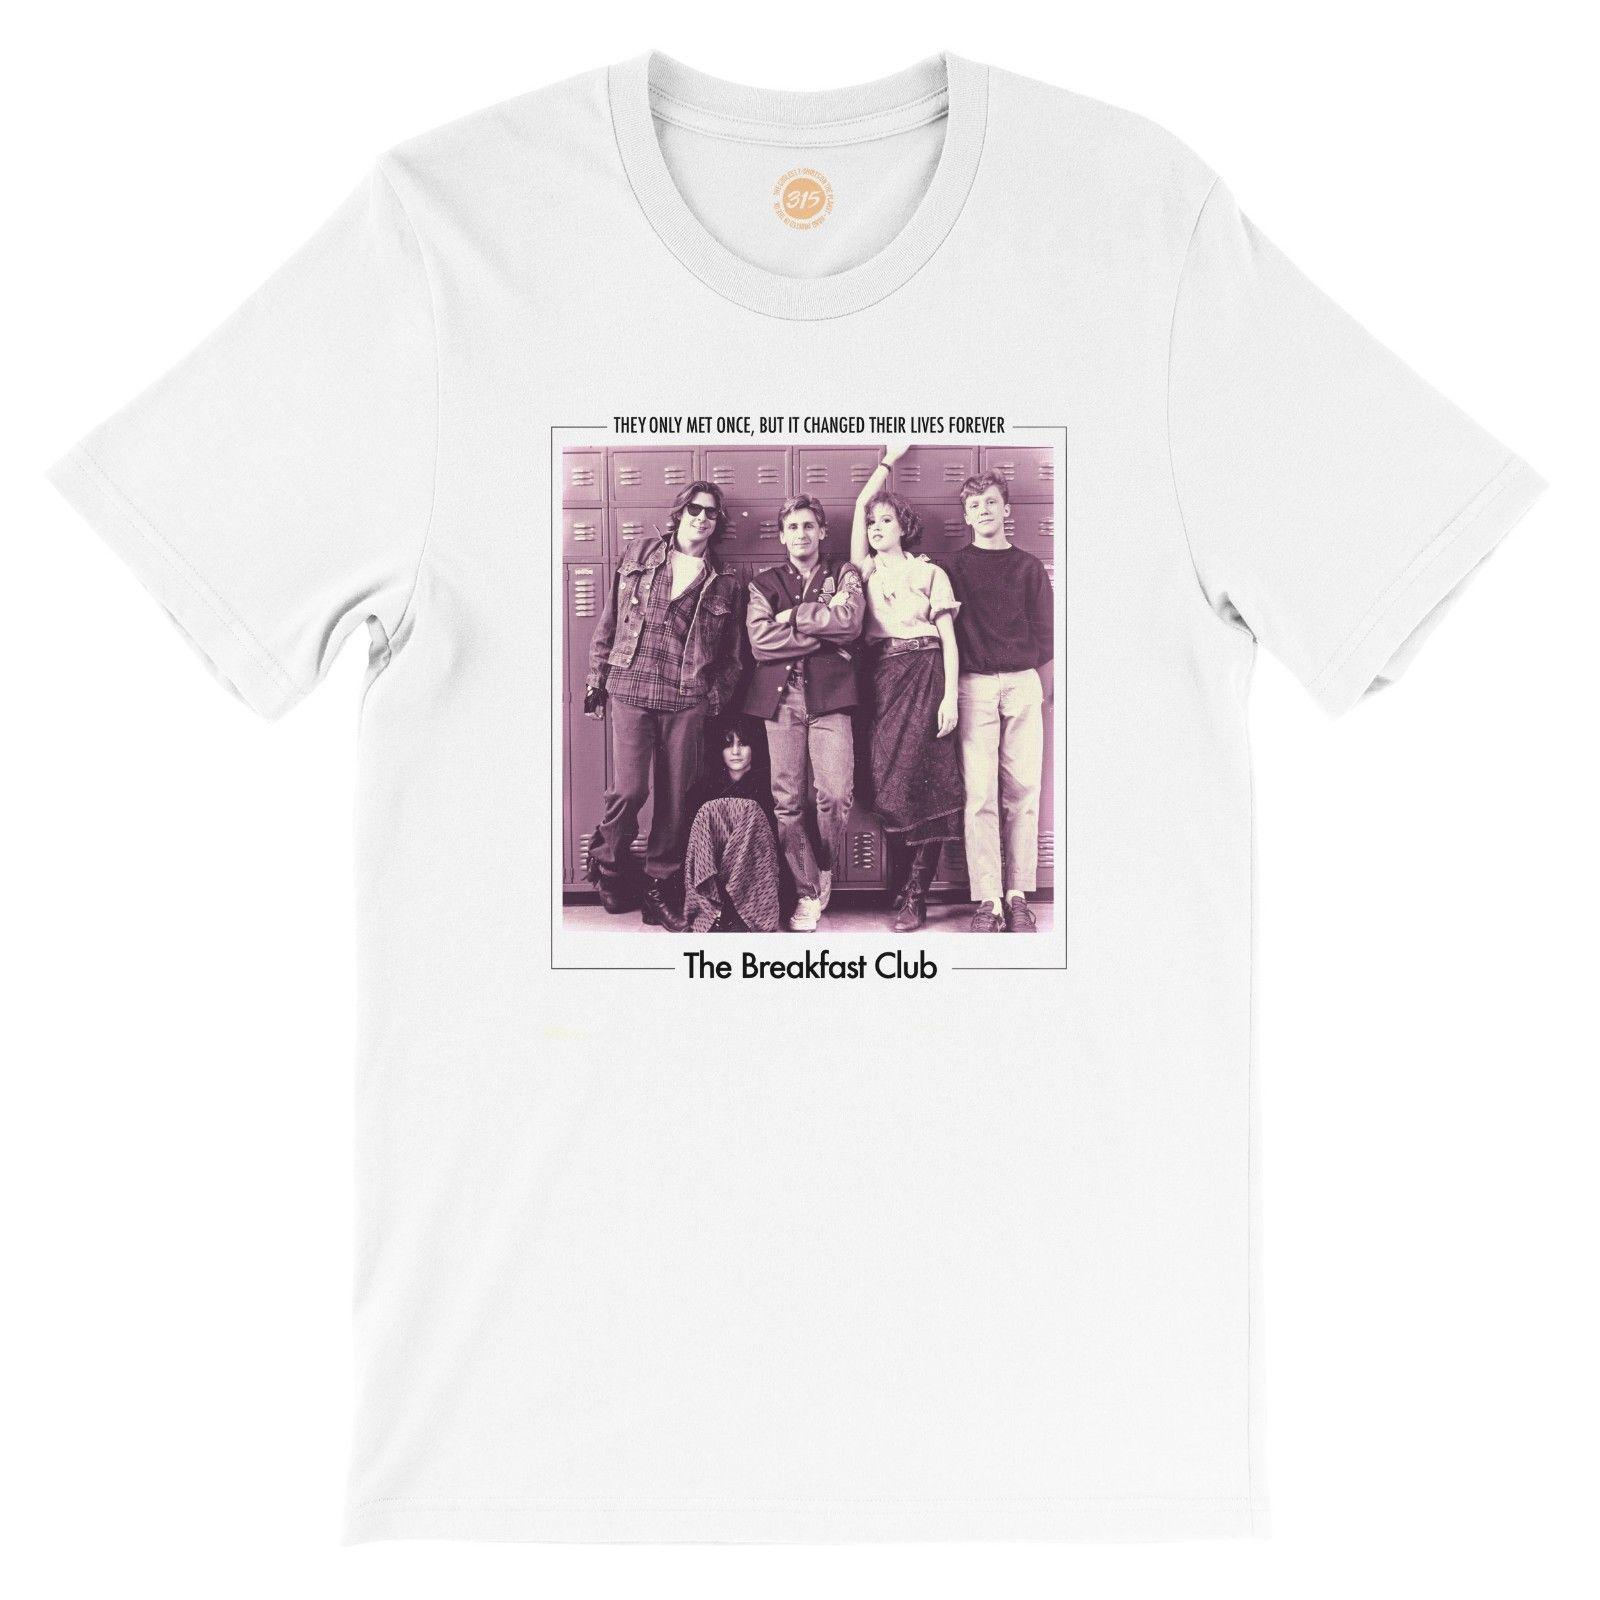 a6c2d20932 The Breakfast Club T-shirt by Studio315 80s movieFunny free shipping Unisex  Casual Tshirt